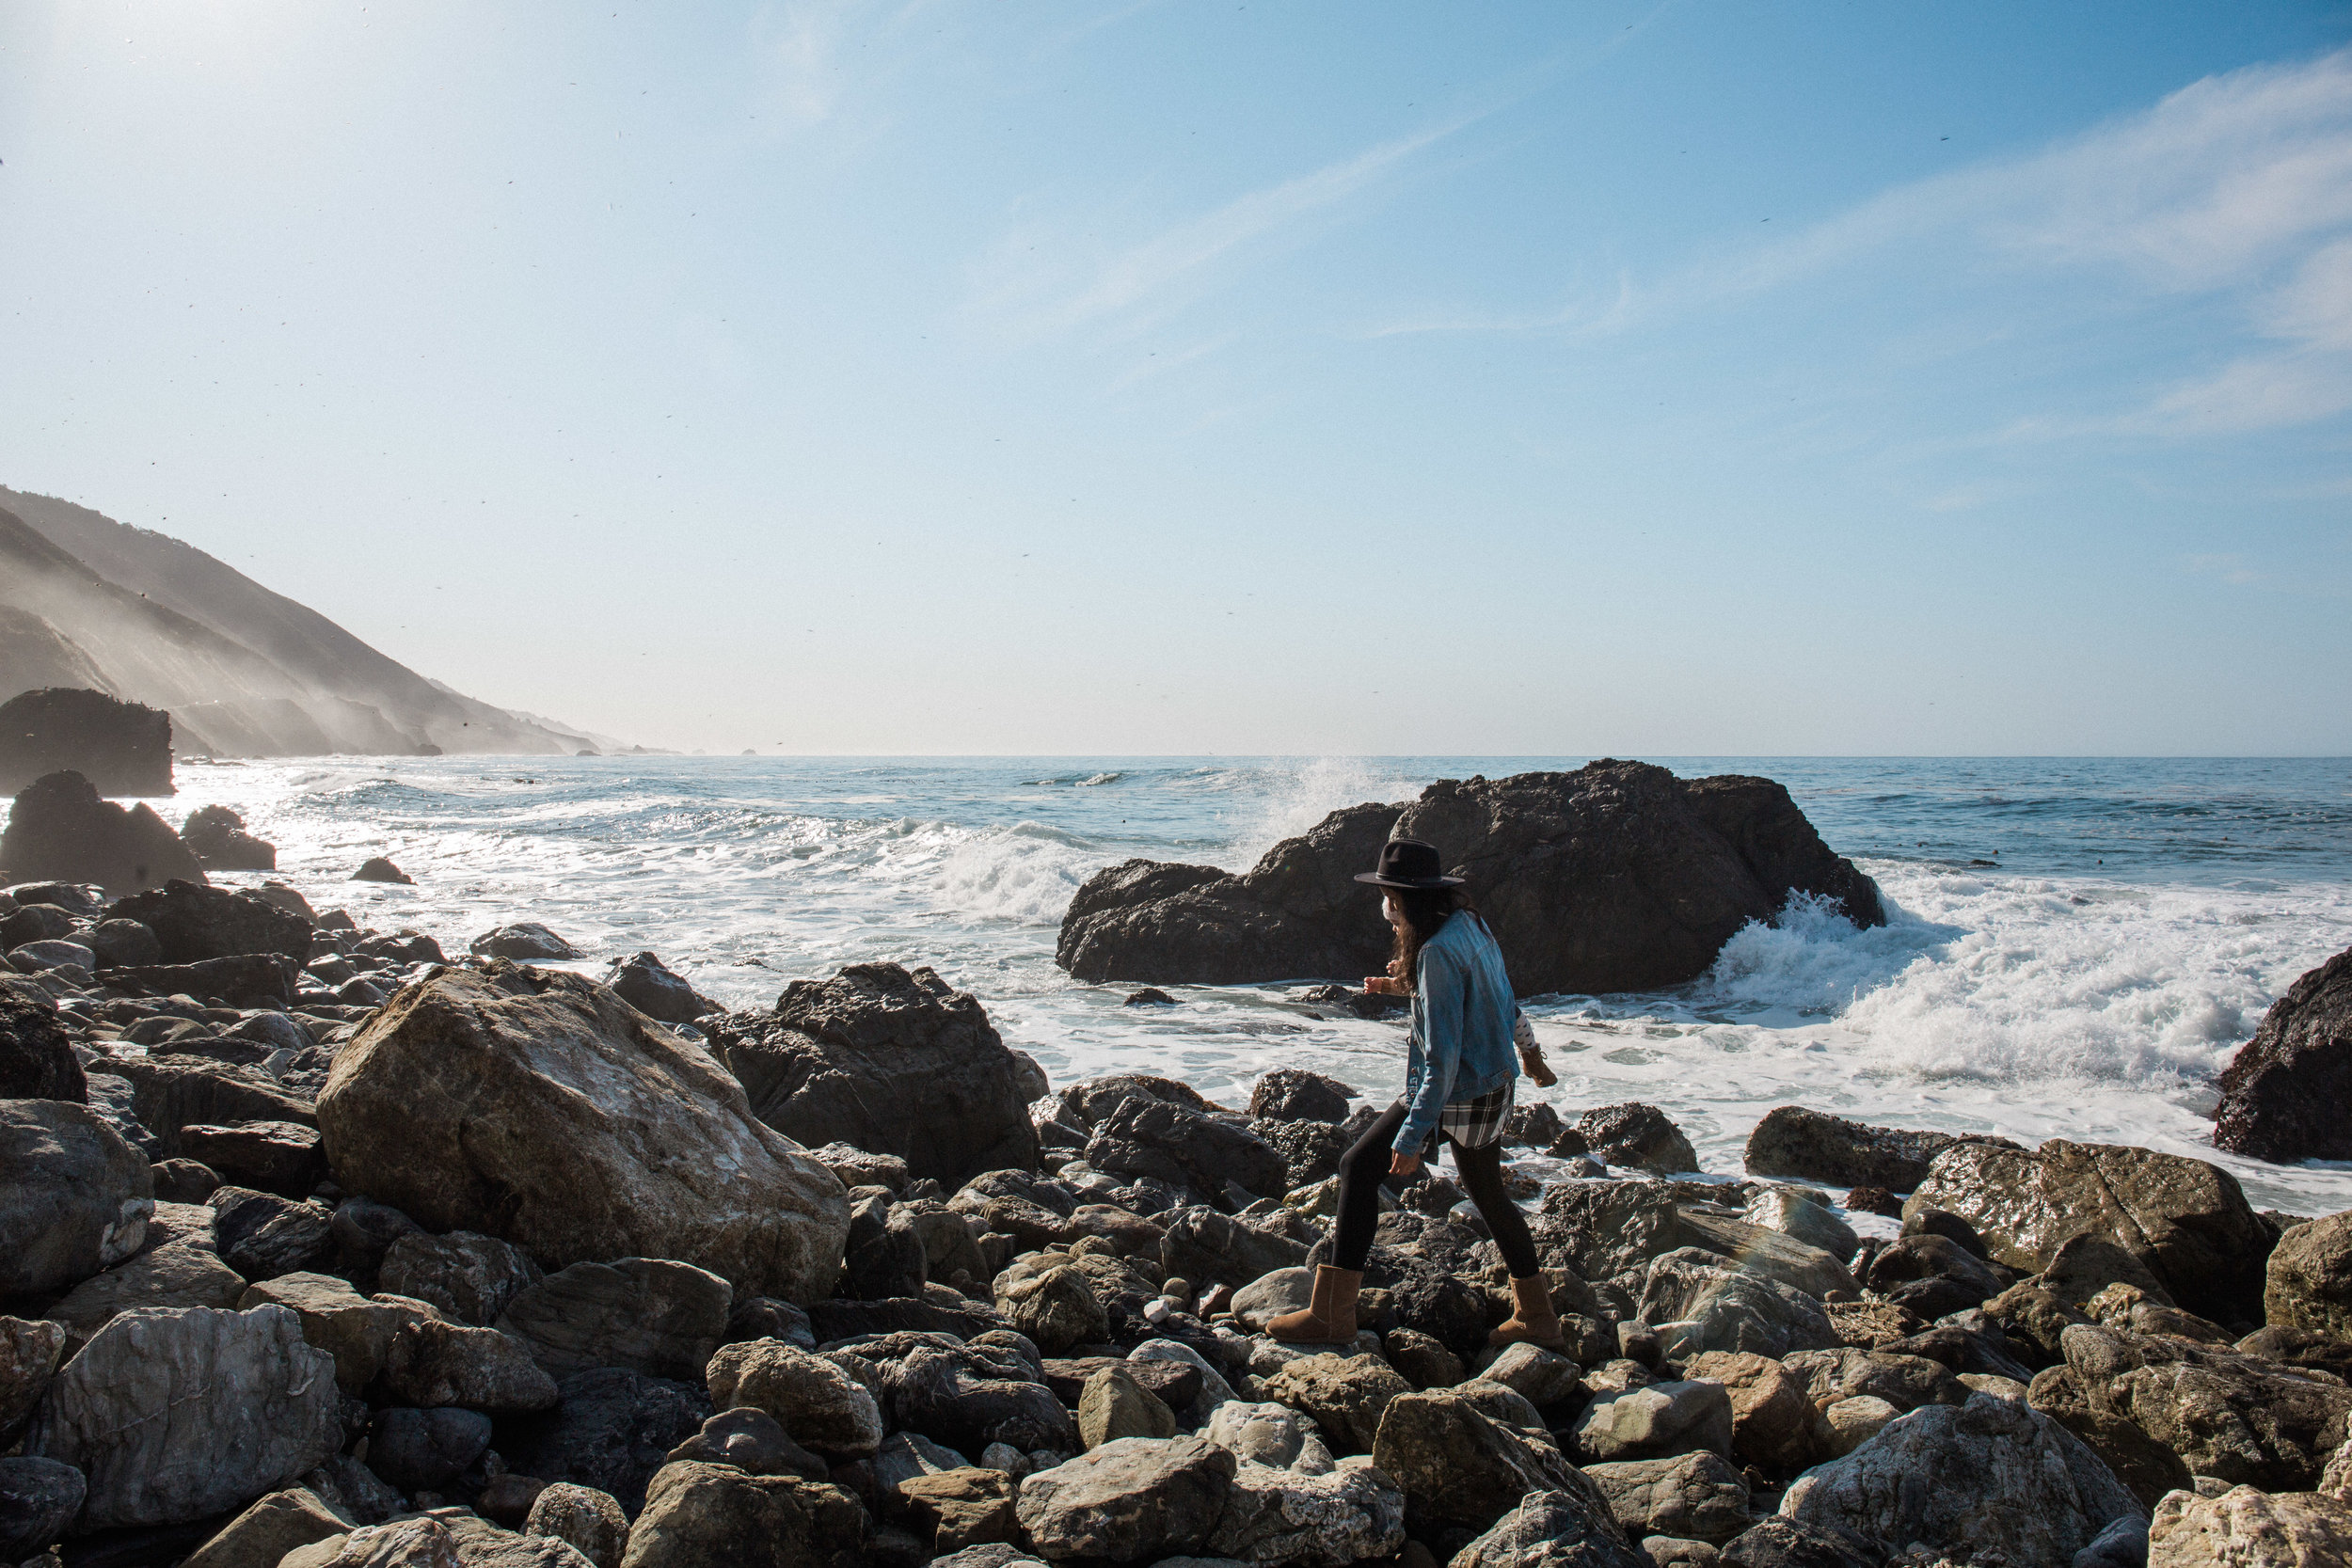 Camping in Big Sur | The Whitefeather Journal